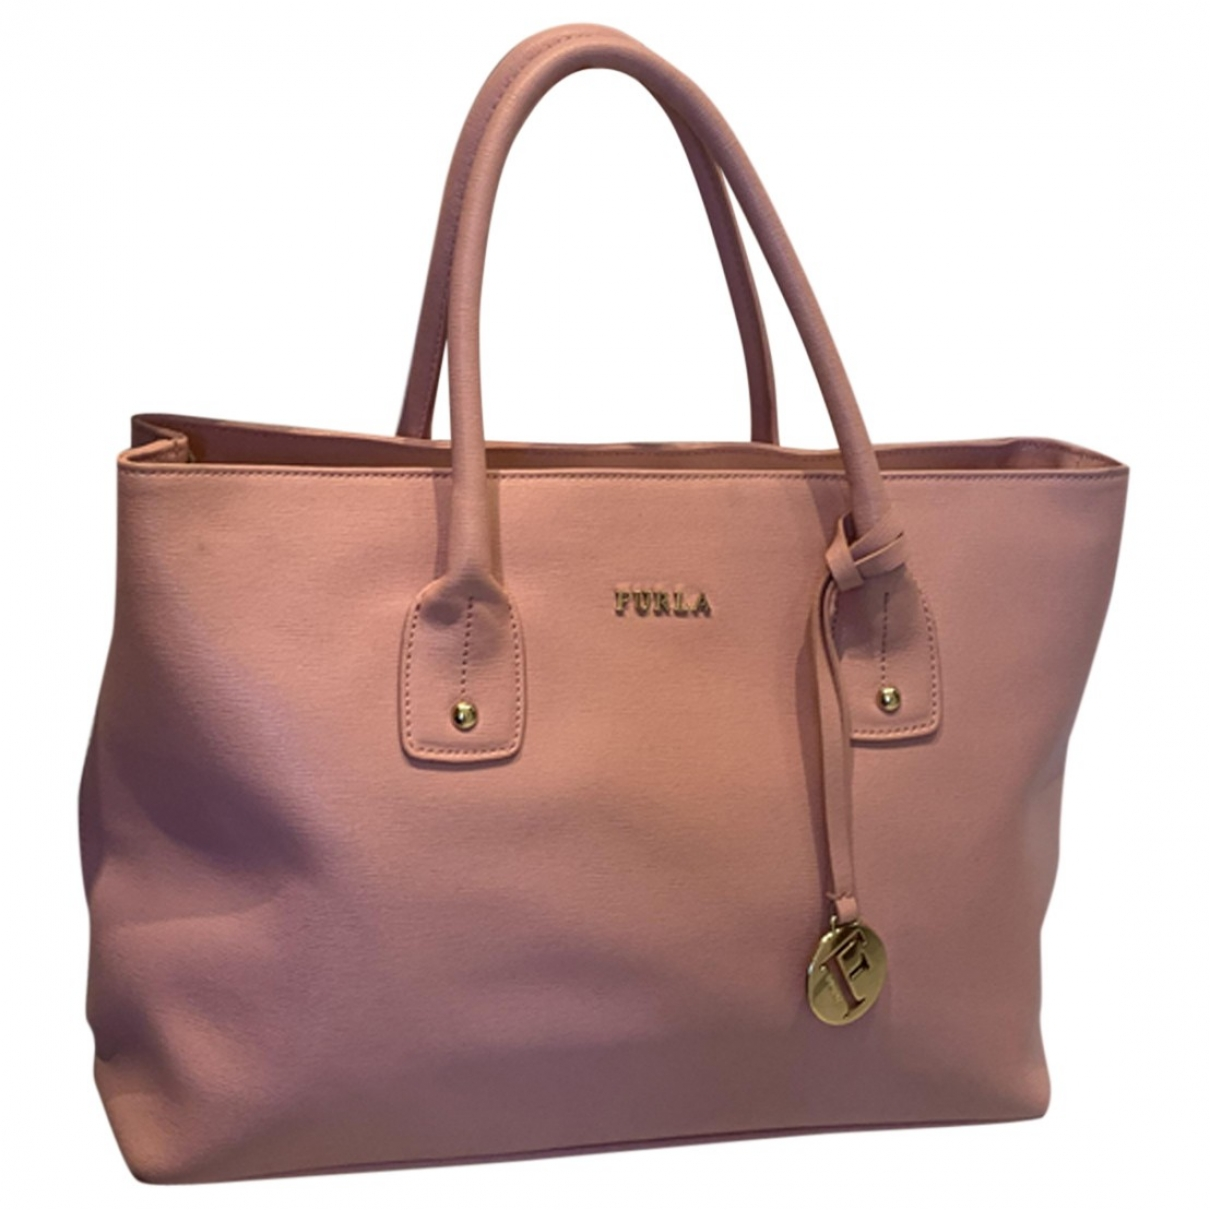 Furla \N Pink Leather handbag for Women \N